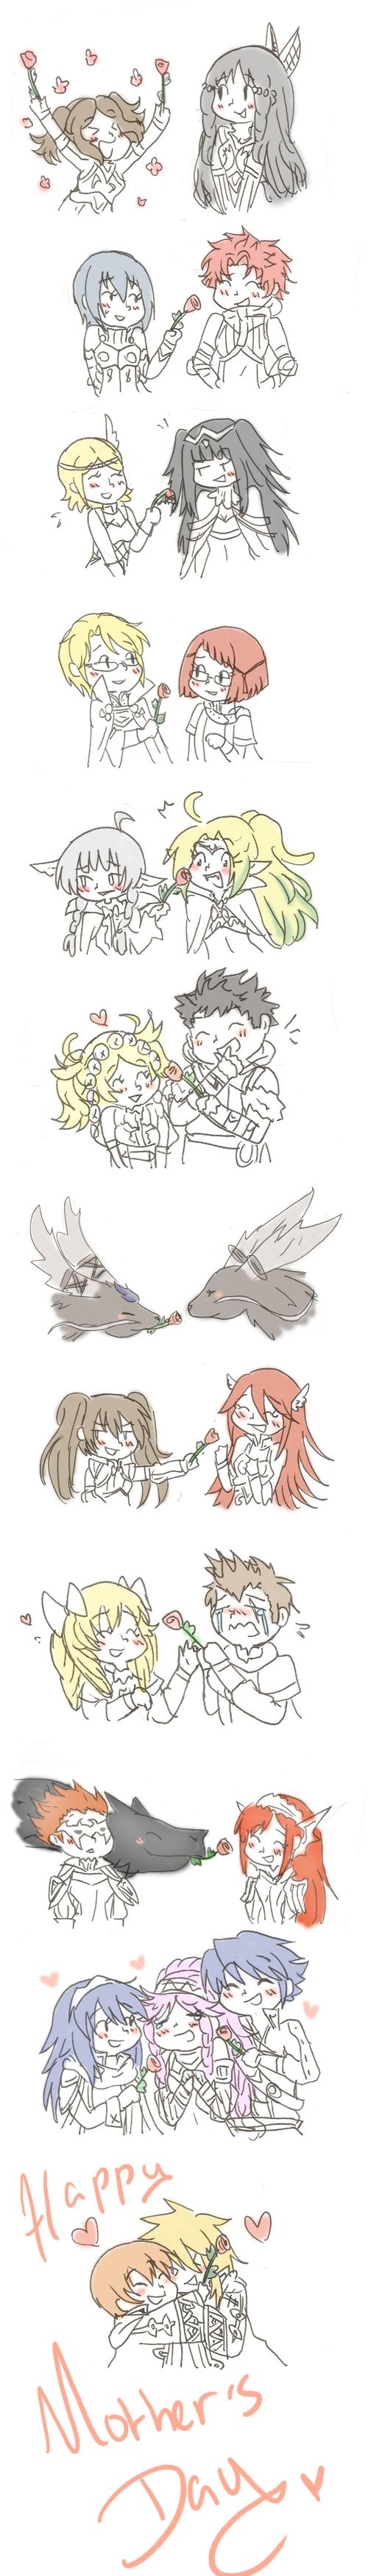 Fire Emblem : Happy Mother's Day by SparxPunx.deviantart.com on @DeviantArt THE PANNE AND YARNE ONE IS FAVE IT'S SO CUTE